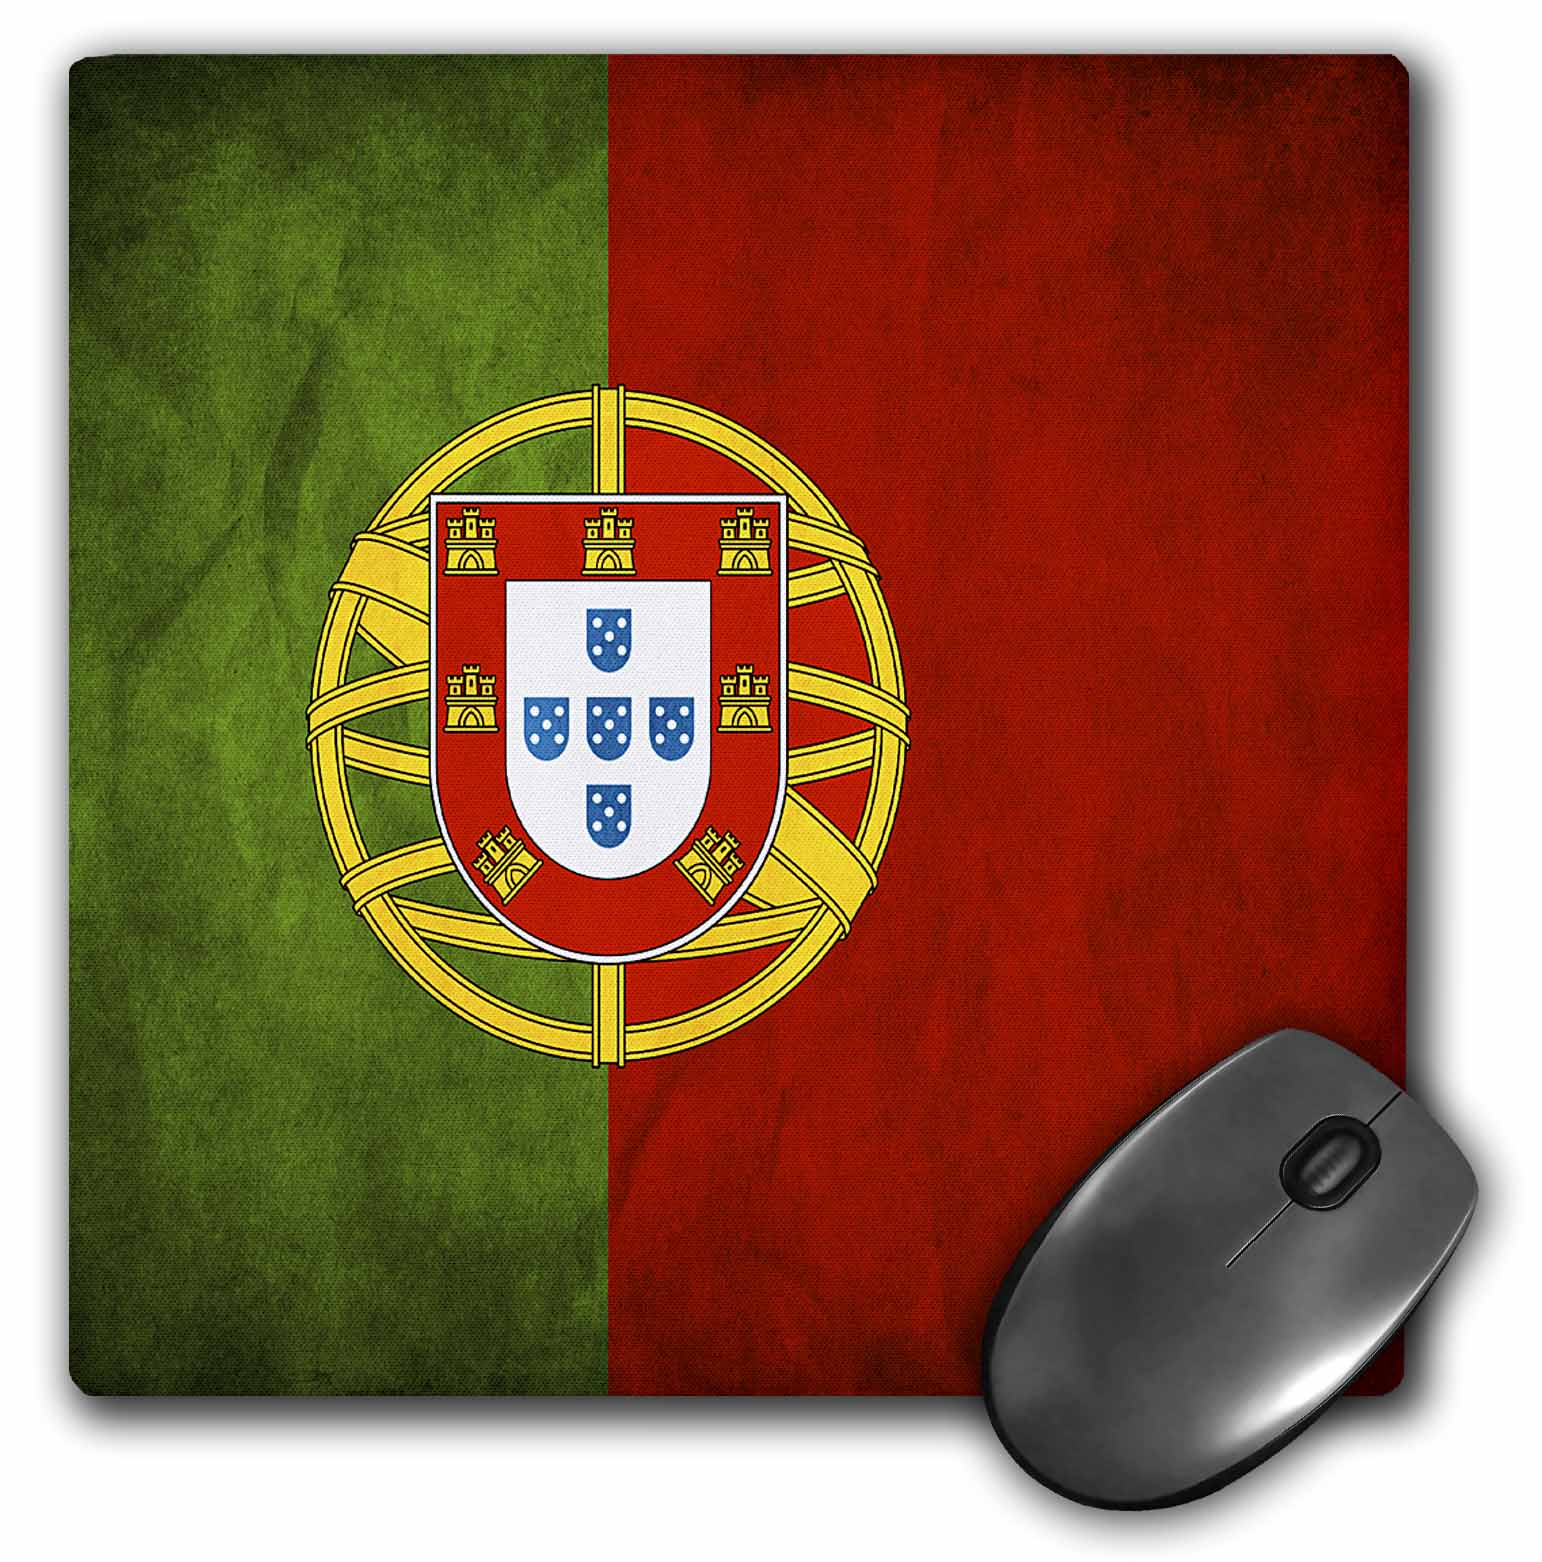 3dRose Portugal Flag, Mouse Pad, 8 by 8 inches by 3dRose